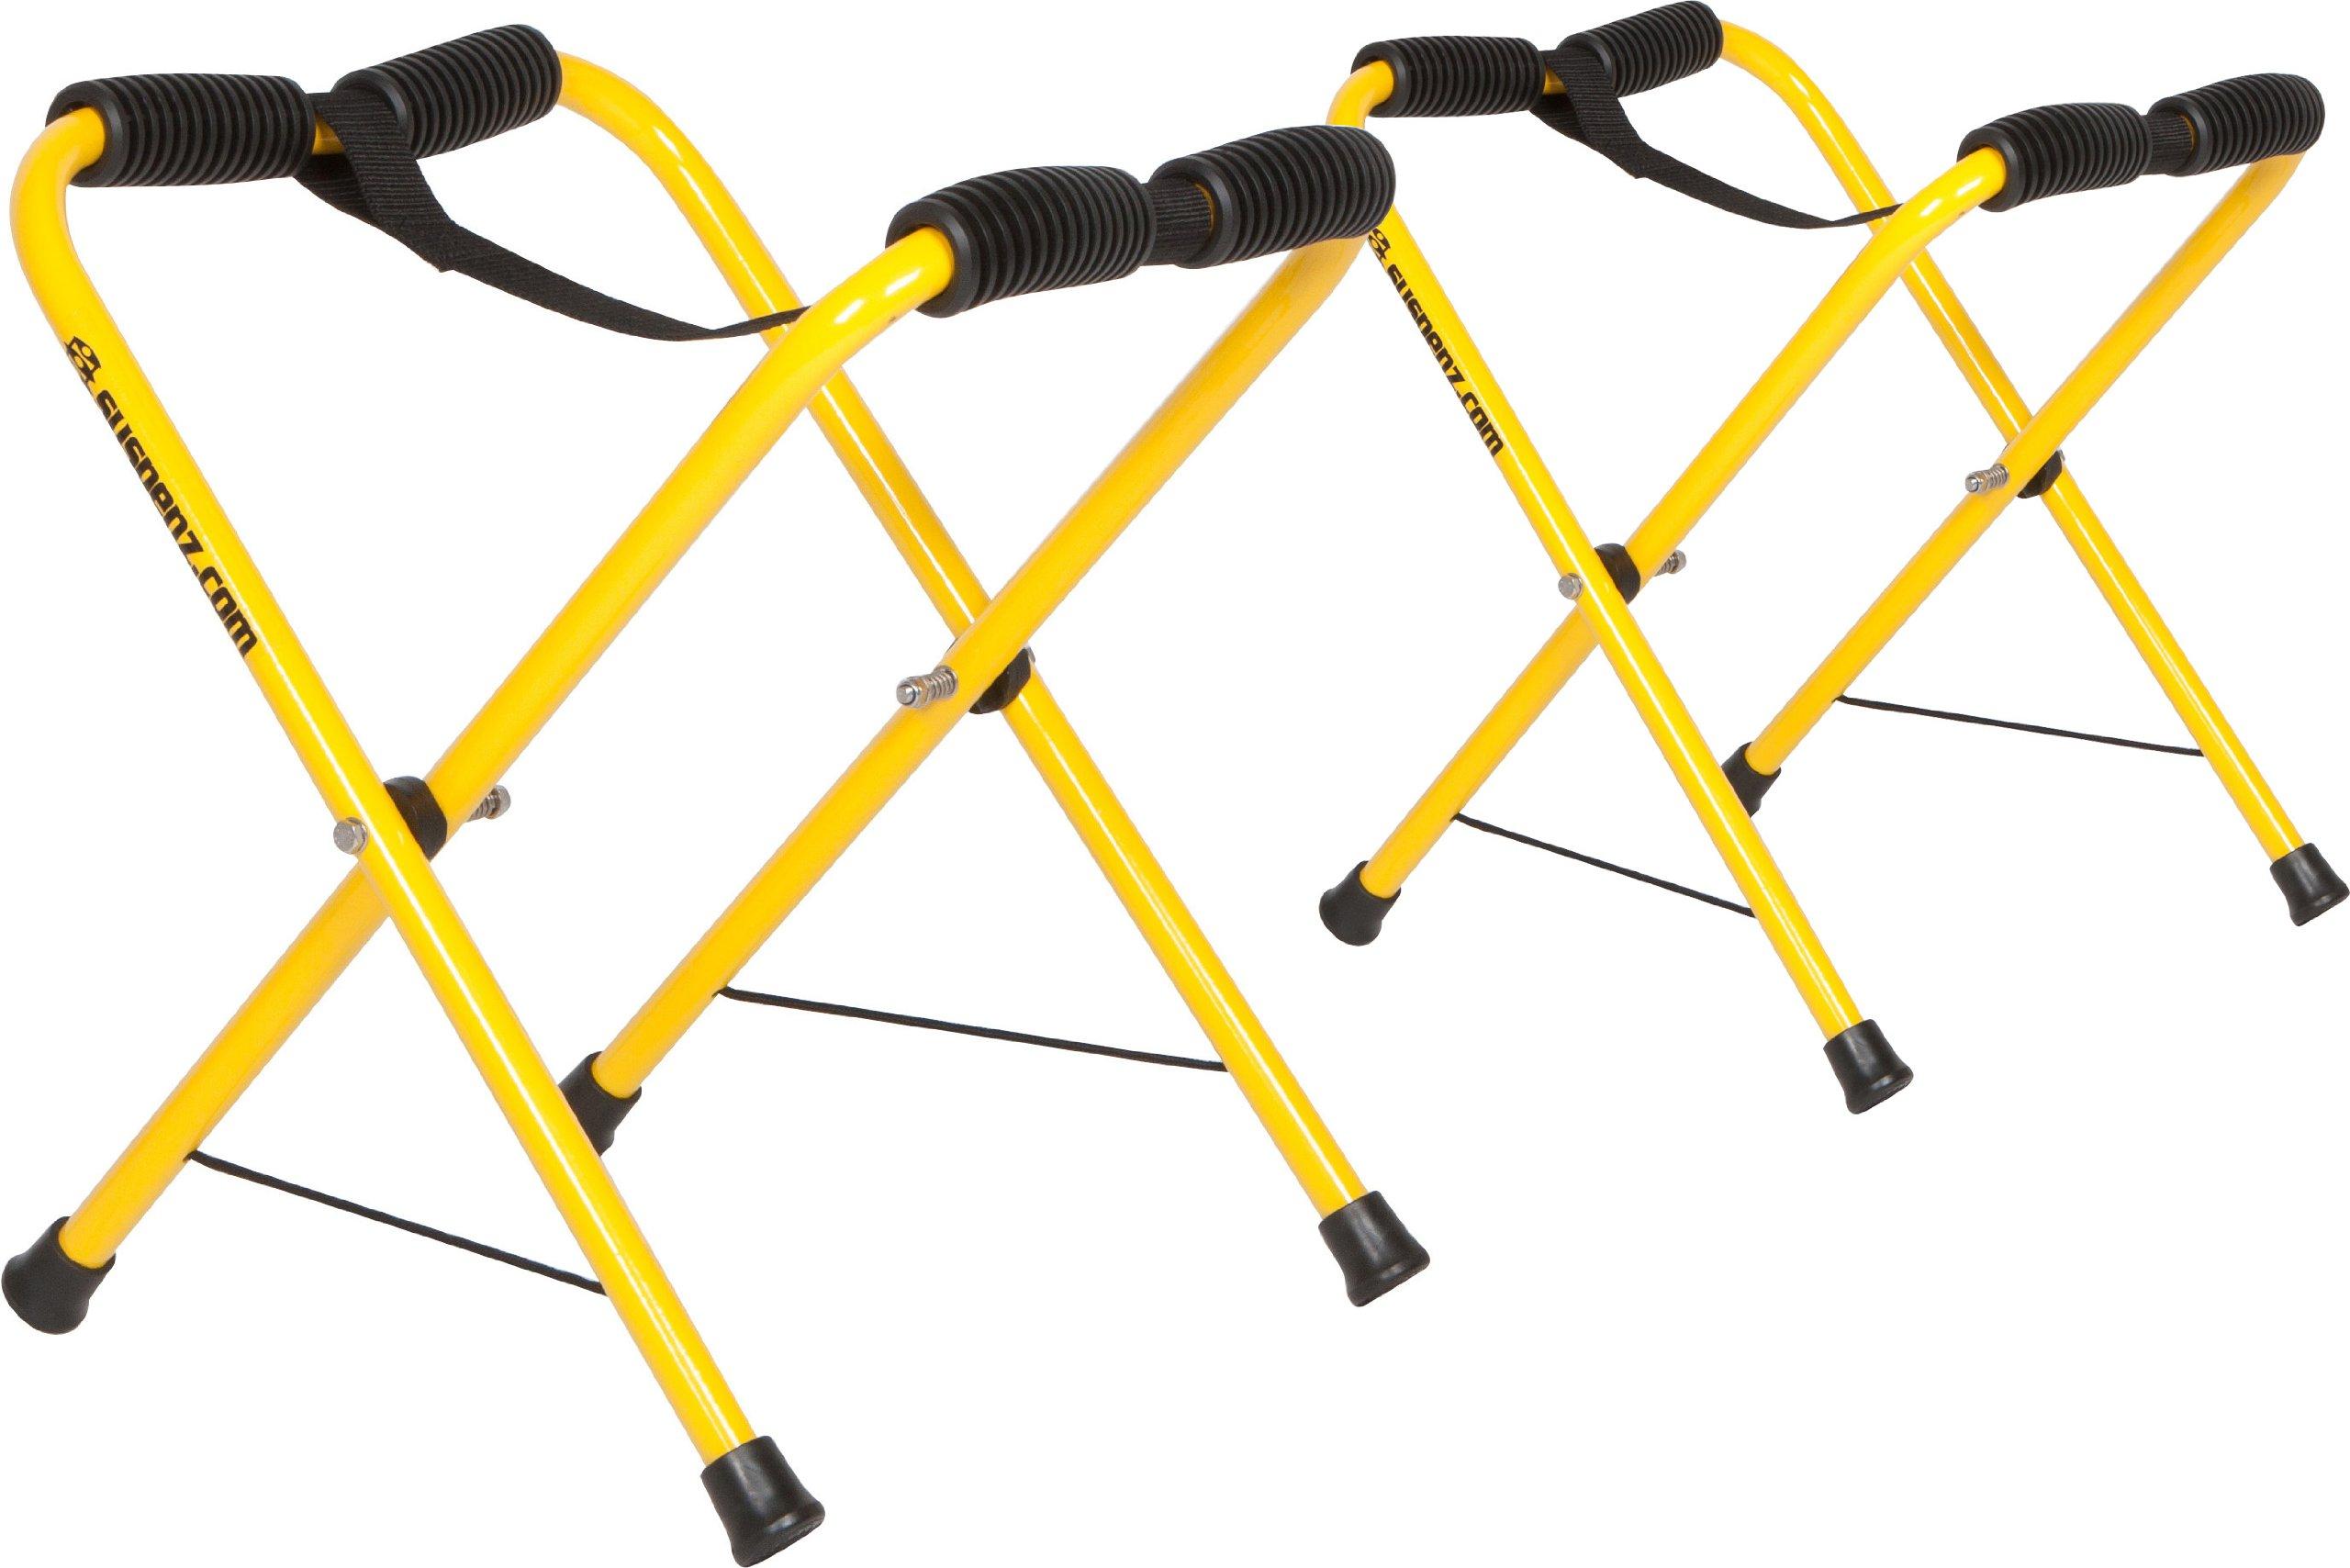 Suspenz Universal Portable Boat Stand